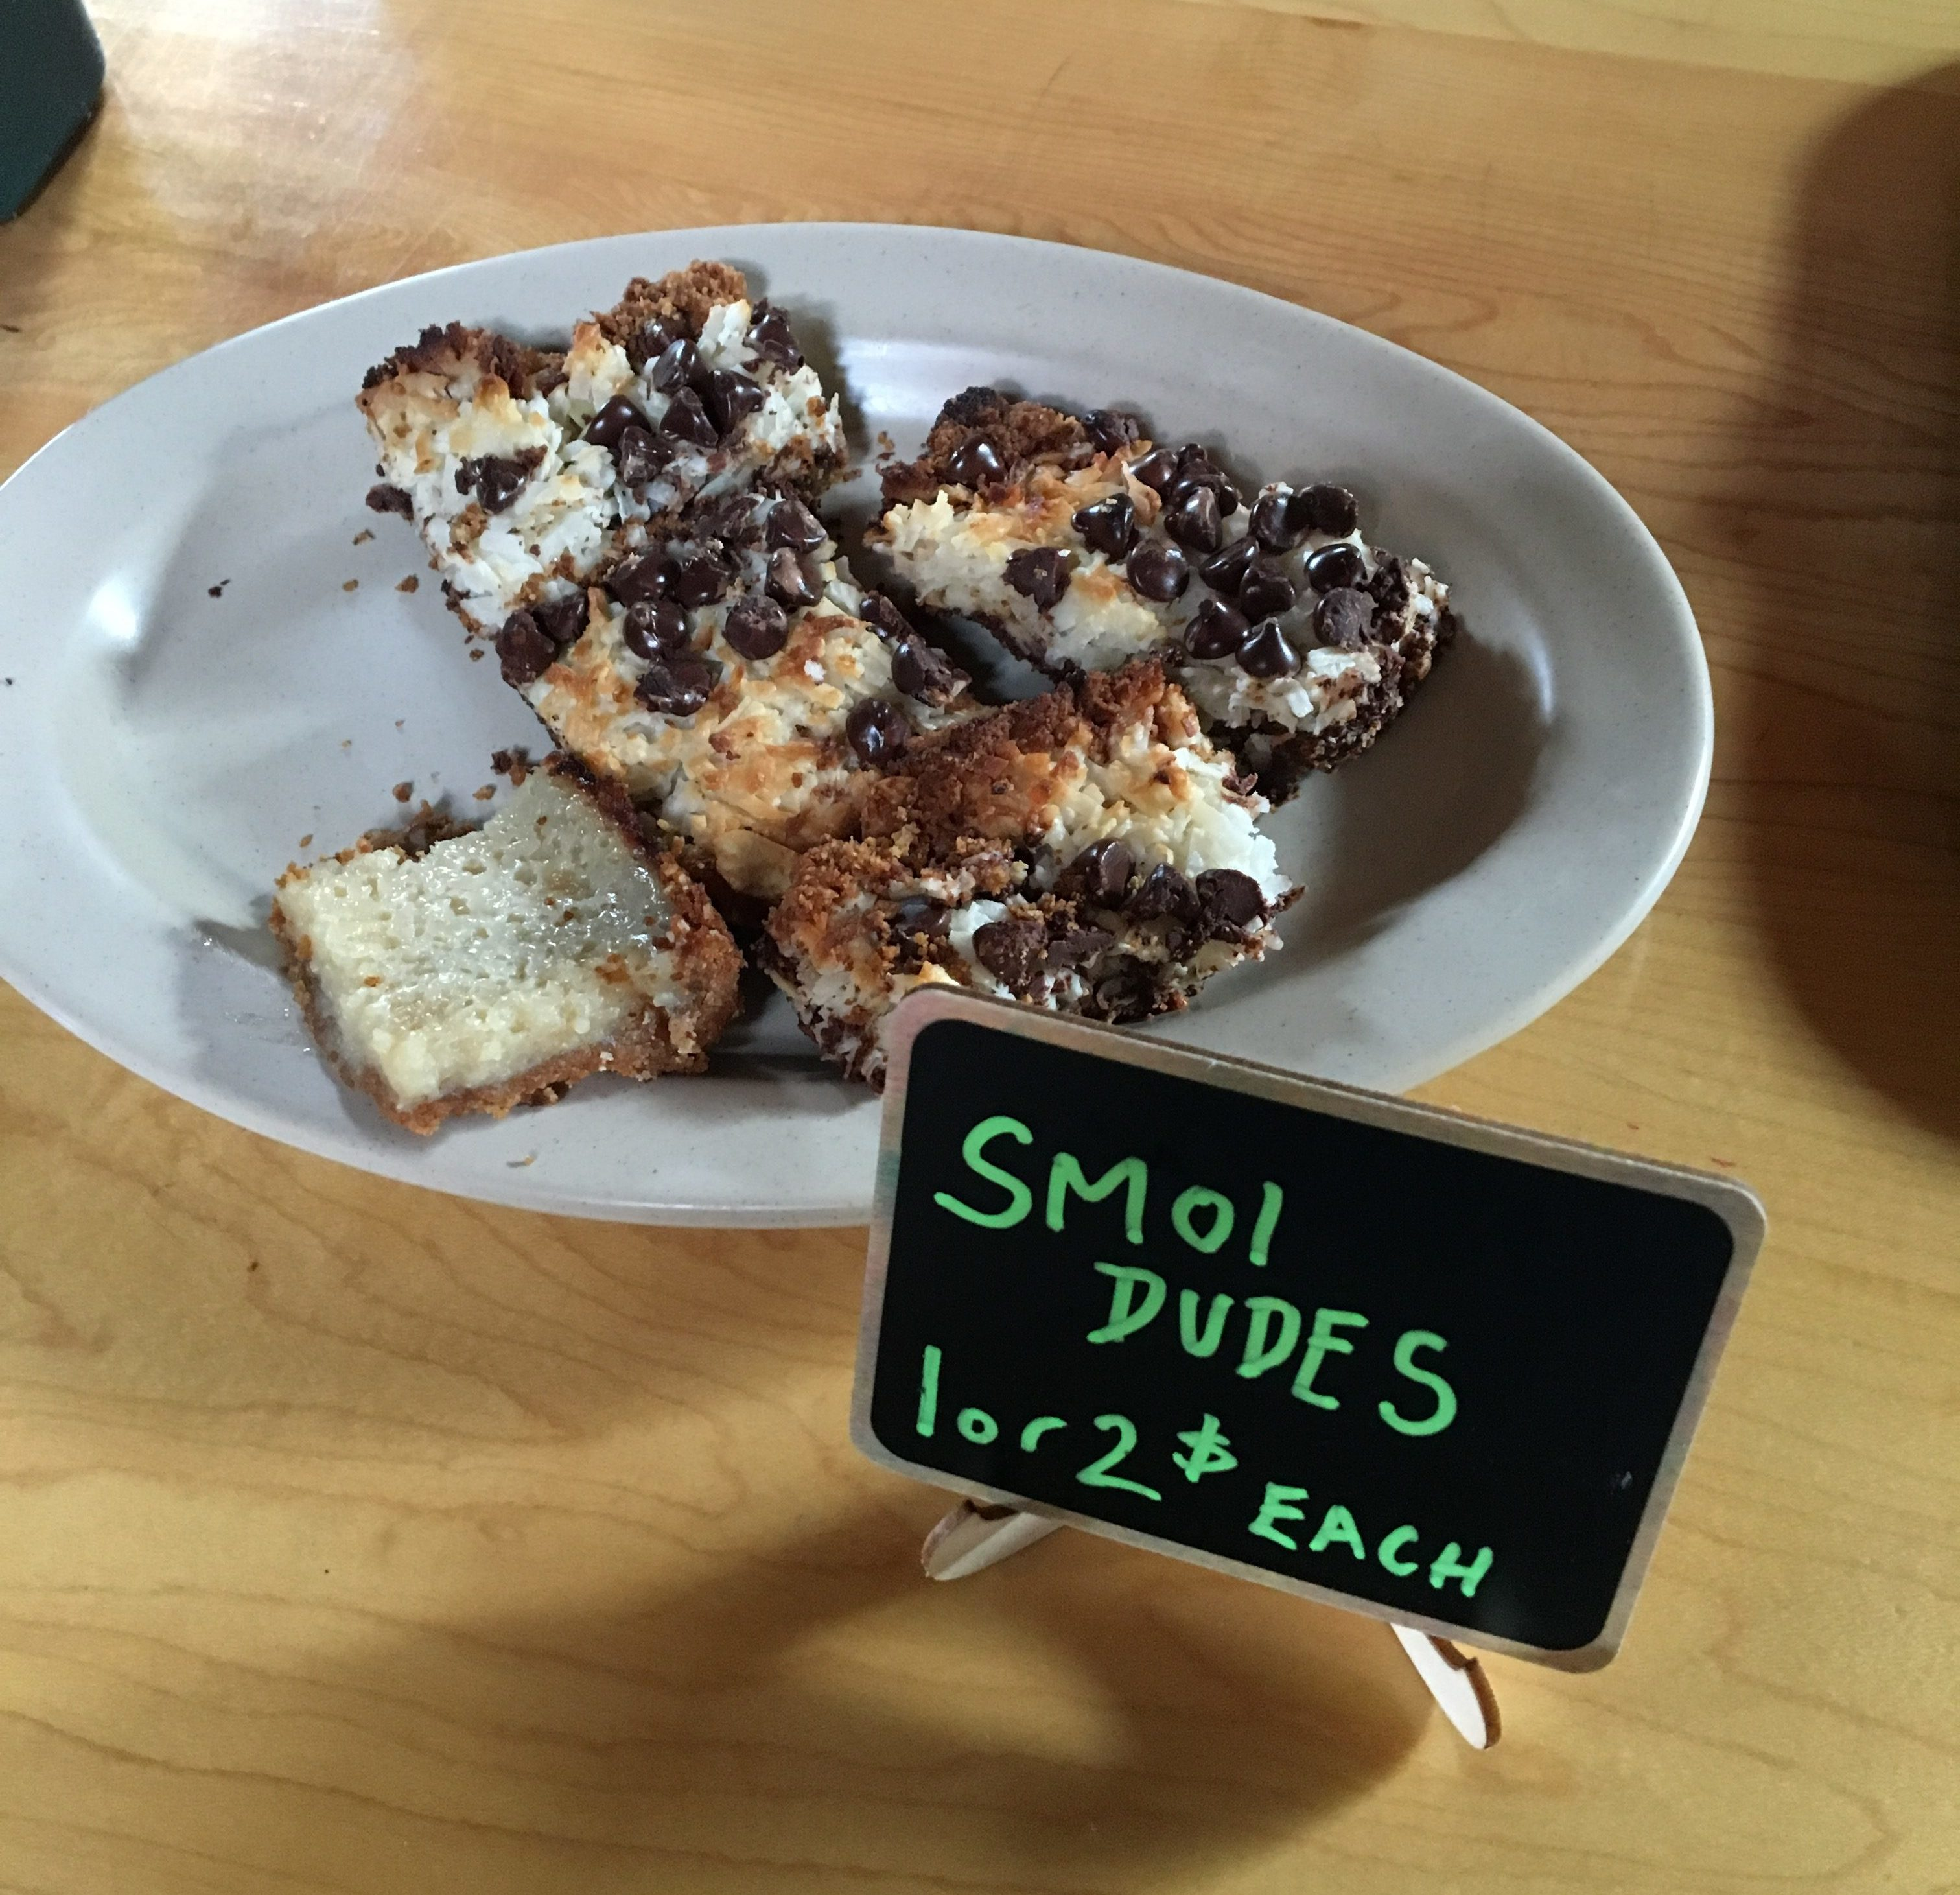 "A plate of brownies on sale in a restaurant. A small sign proclaims them ""SMOL DUDES: 1 or 2$ each""."